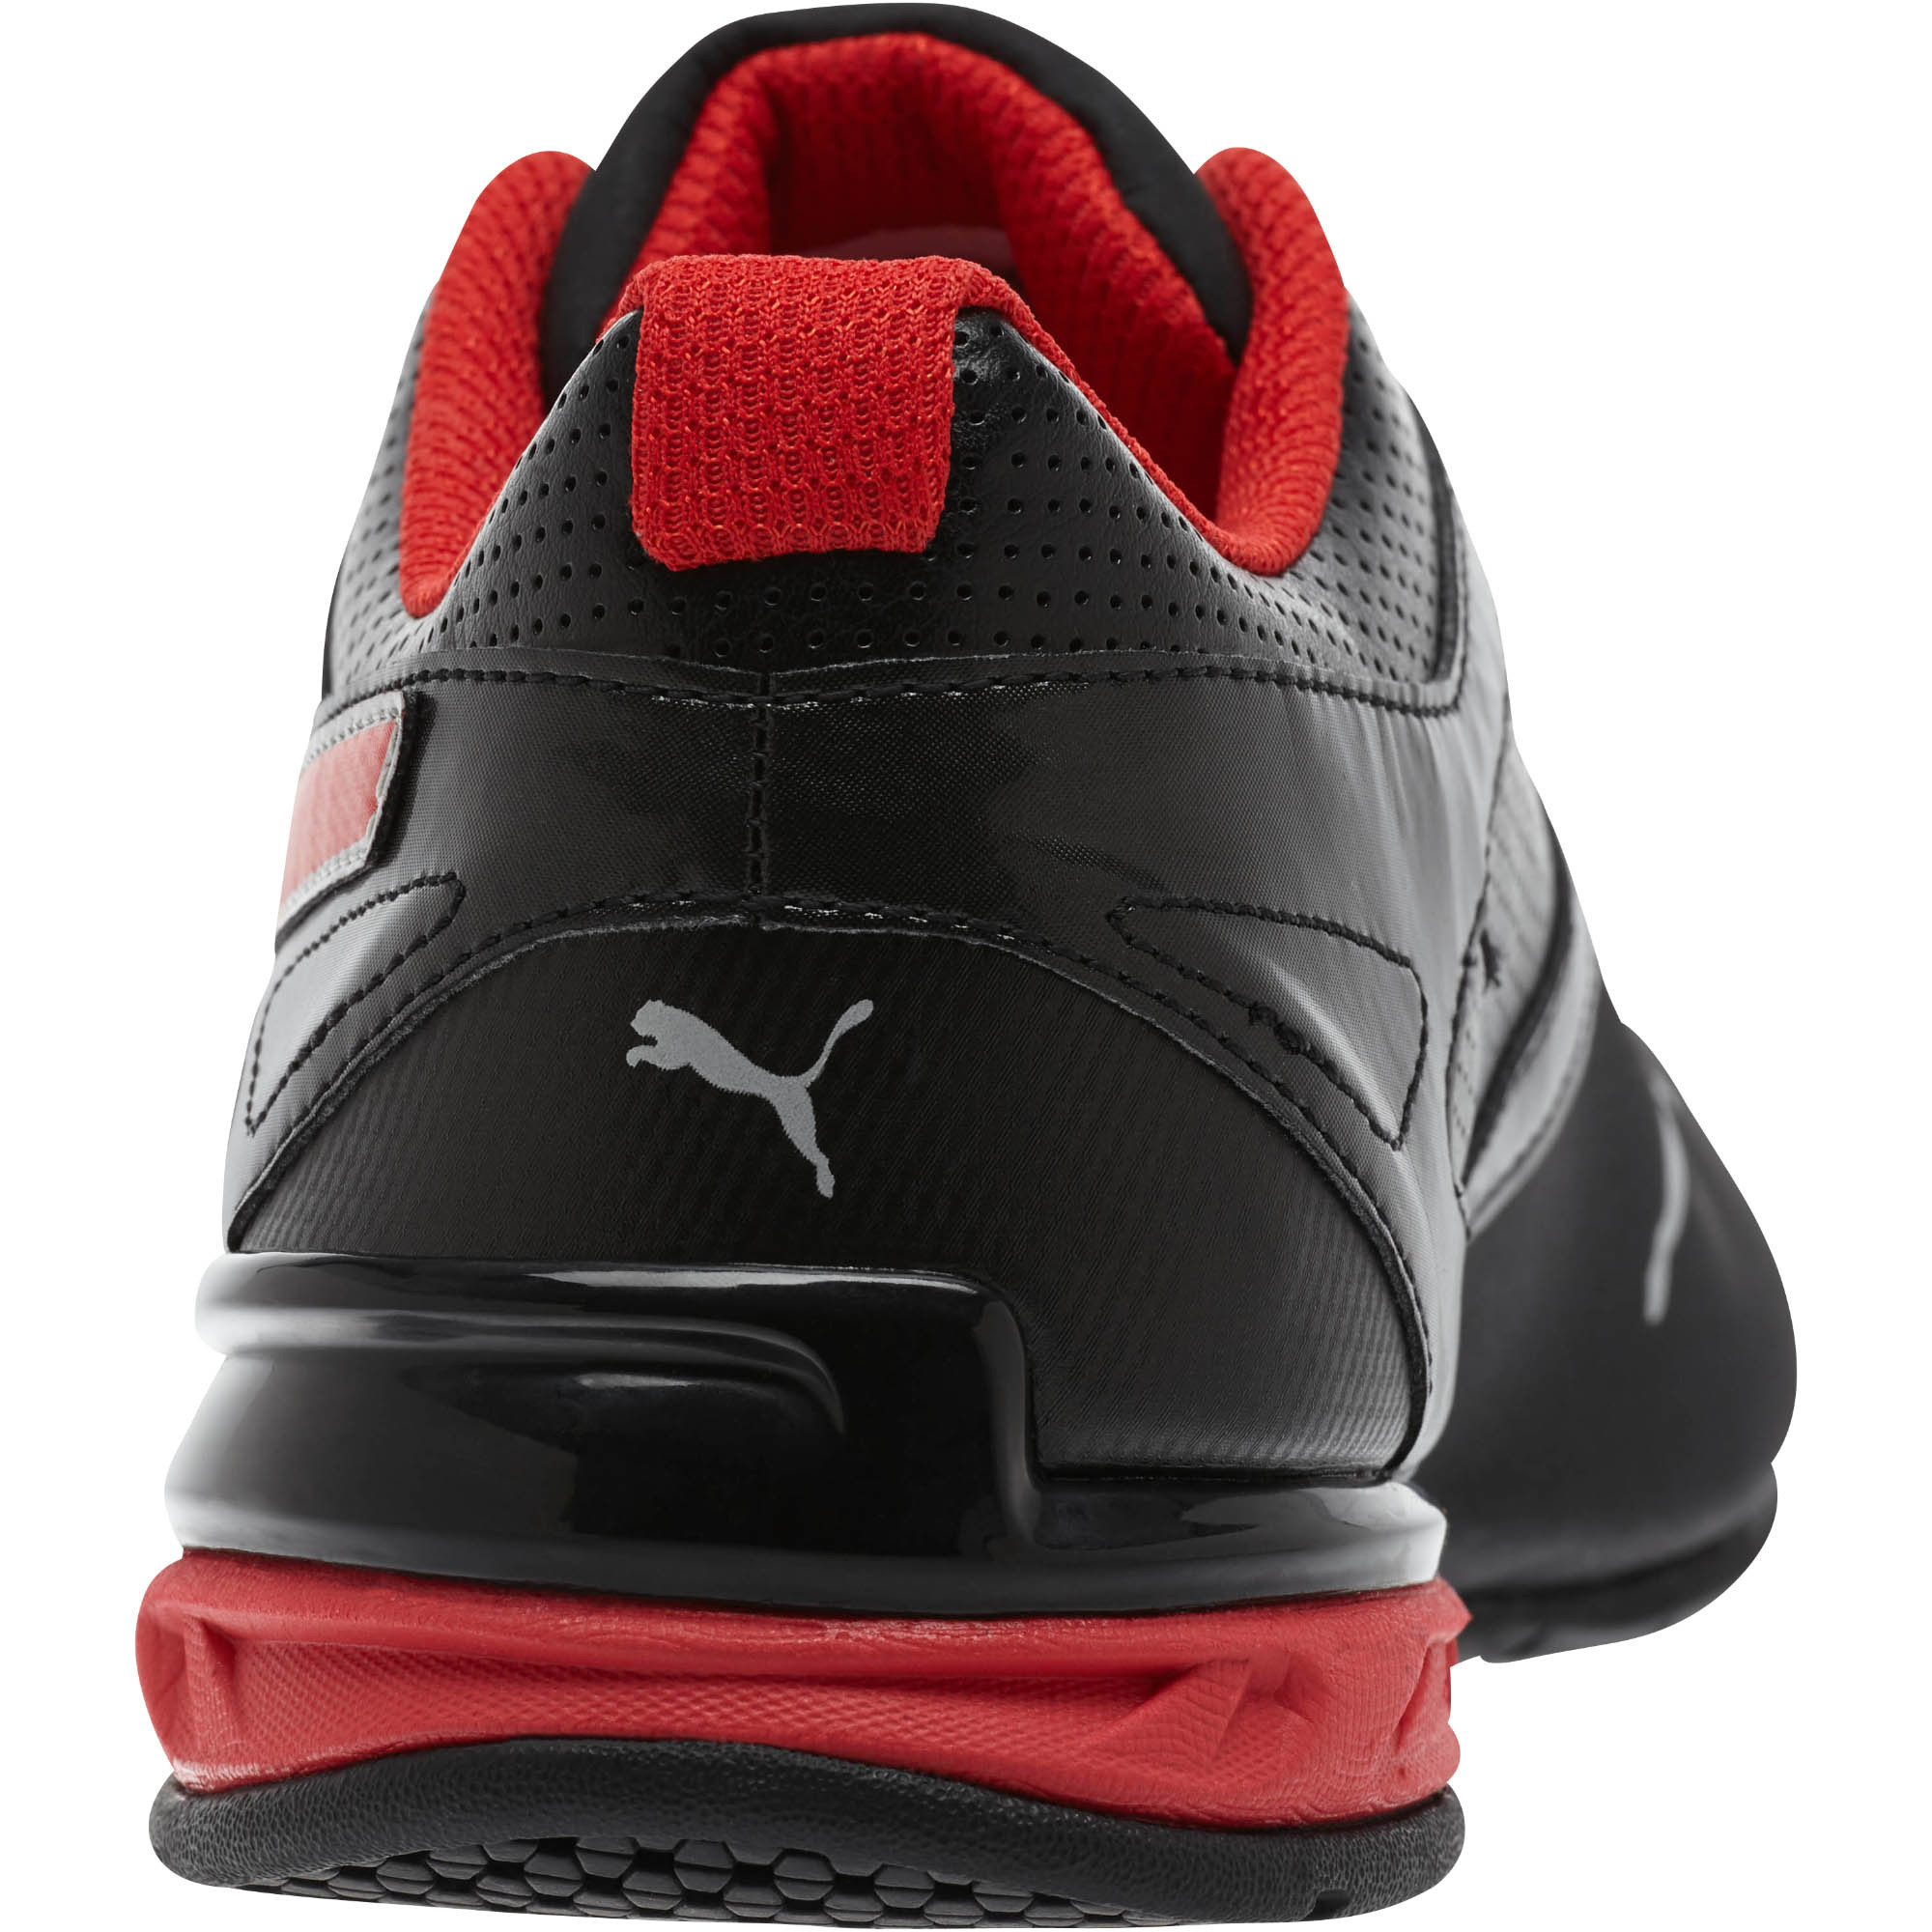 PUMA-Tazon-6-FM-Men-039-s-Sneakers-Men-Shoe-Running thumbnail 8